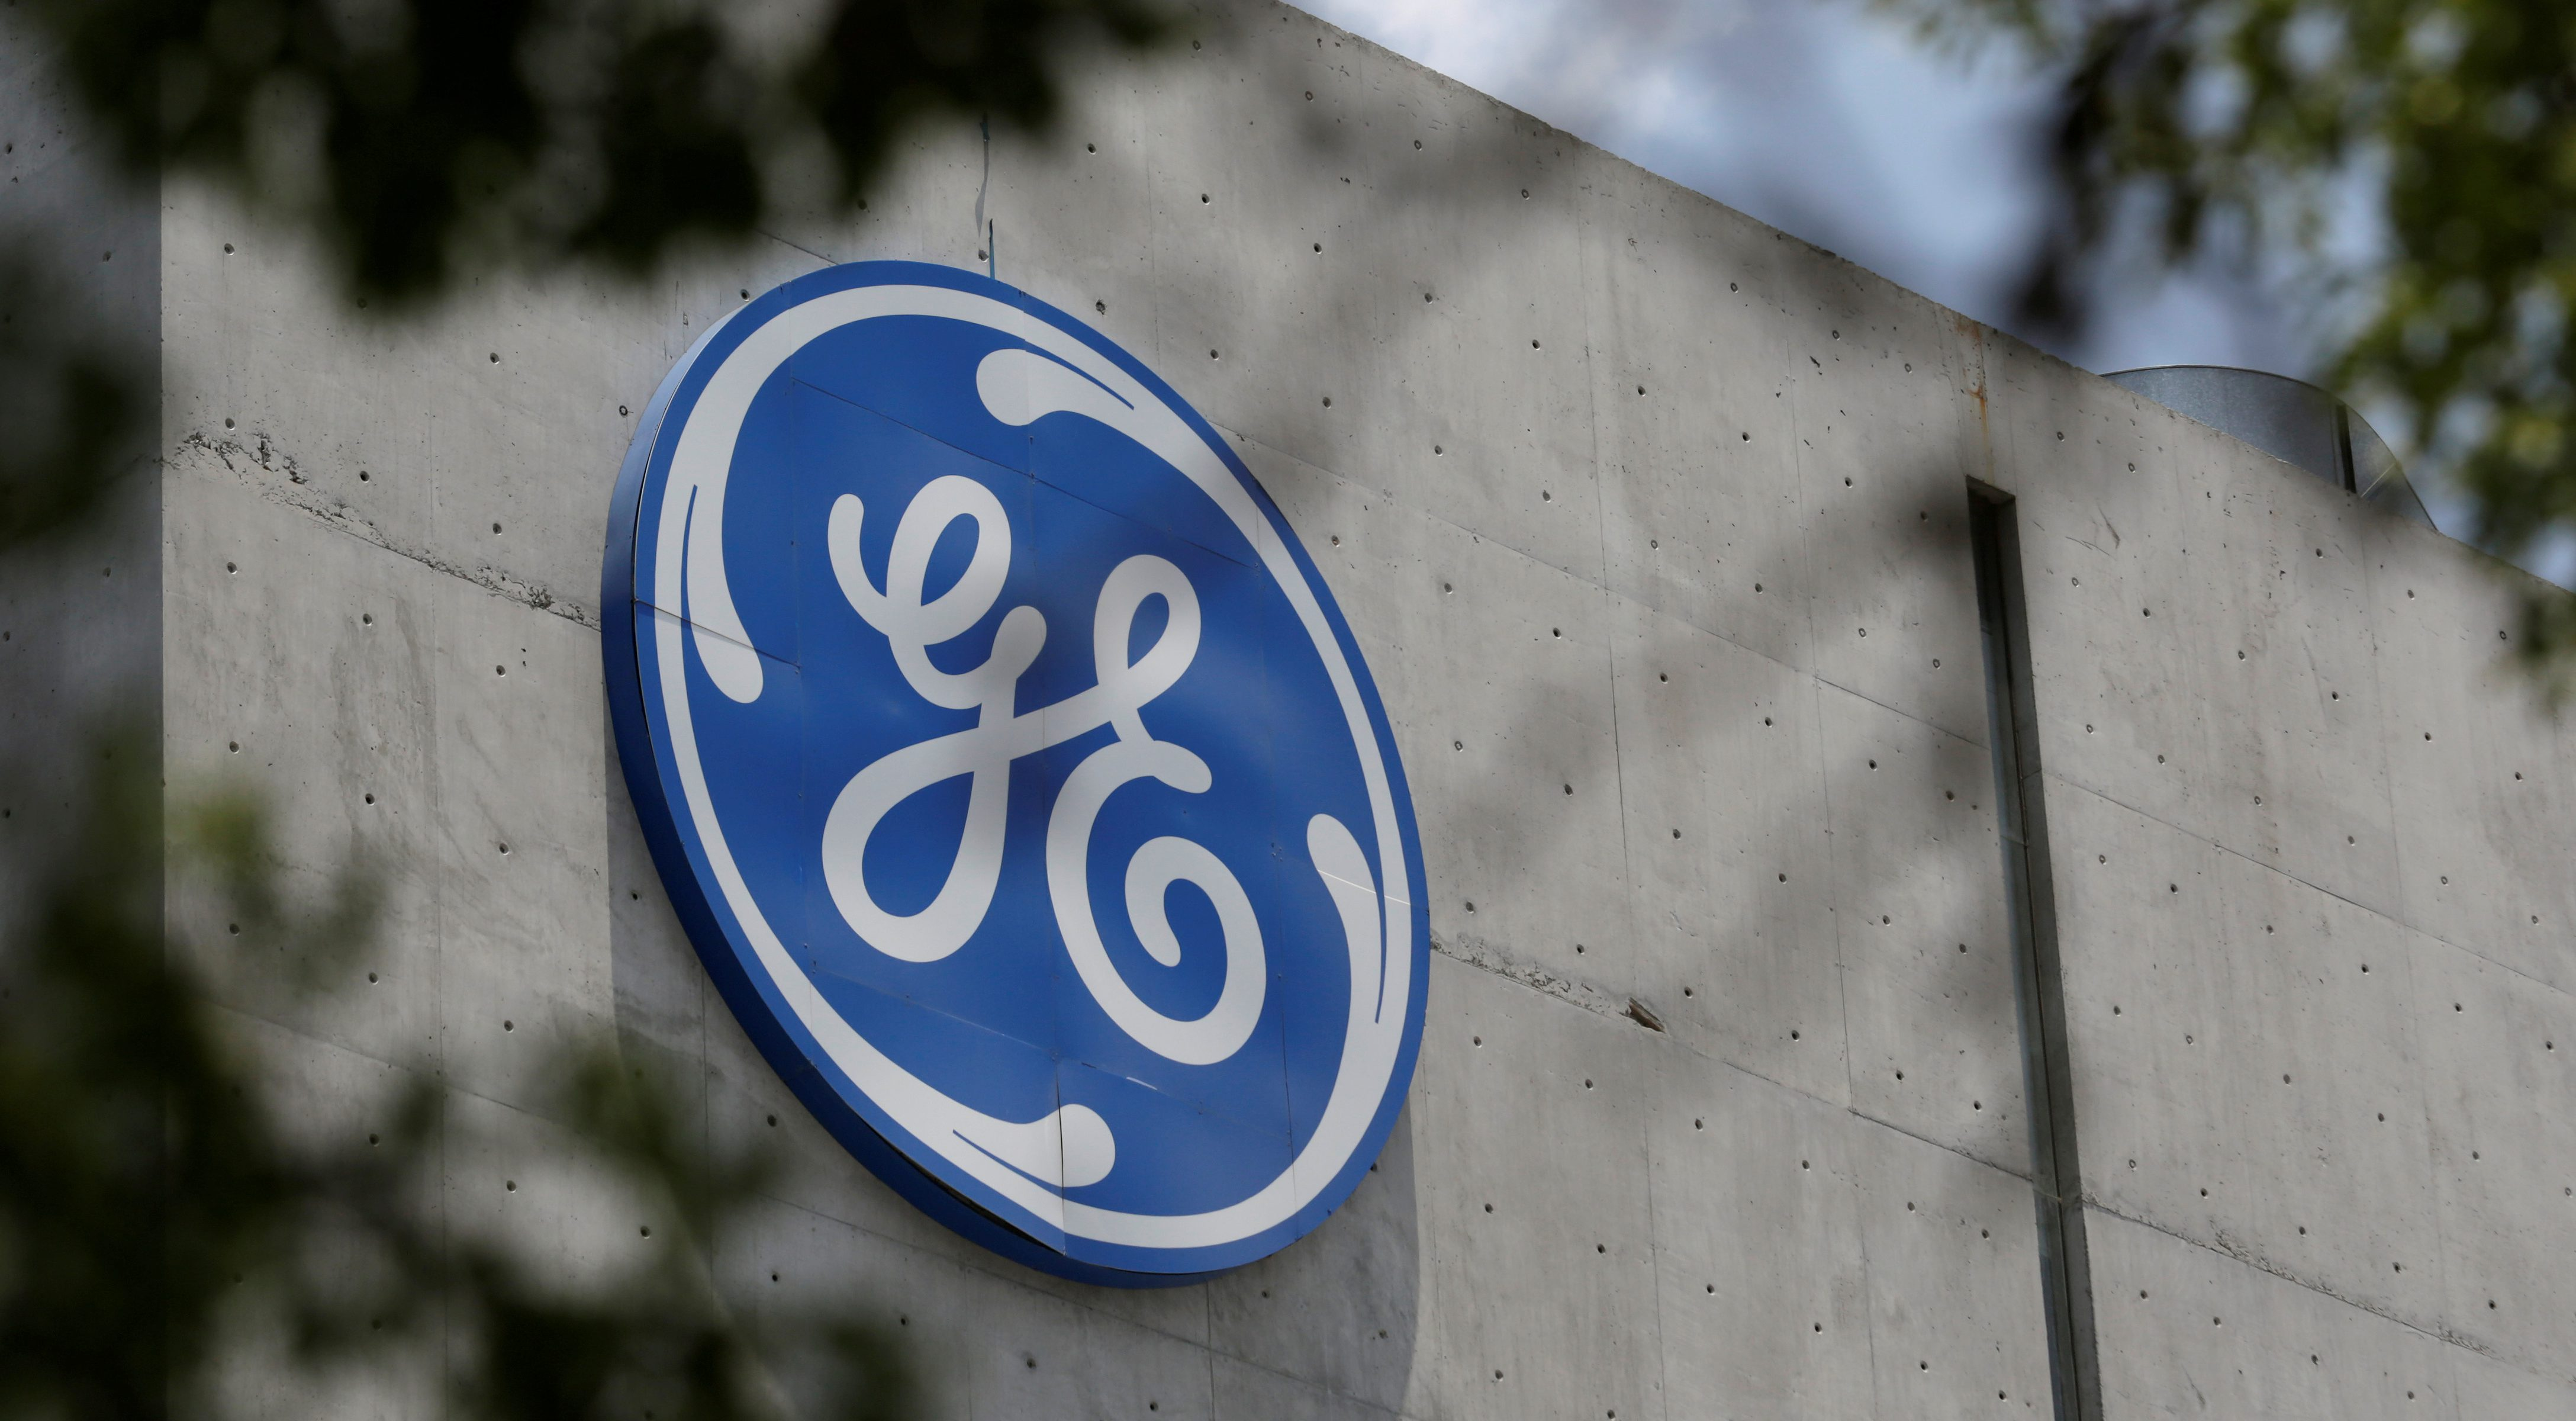 The logo of General Electric Co. is pictured at the Global Operations Center in San Pedro Garza Garcia, neighbouring Monterrey, Mexico, on May 12, 2017.